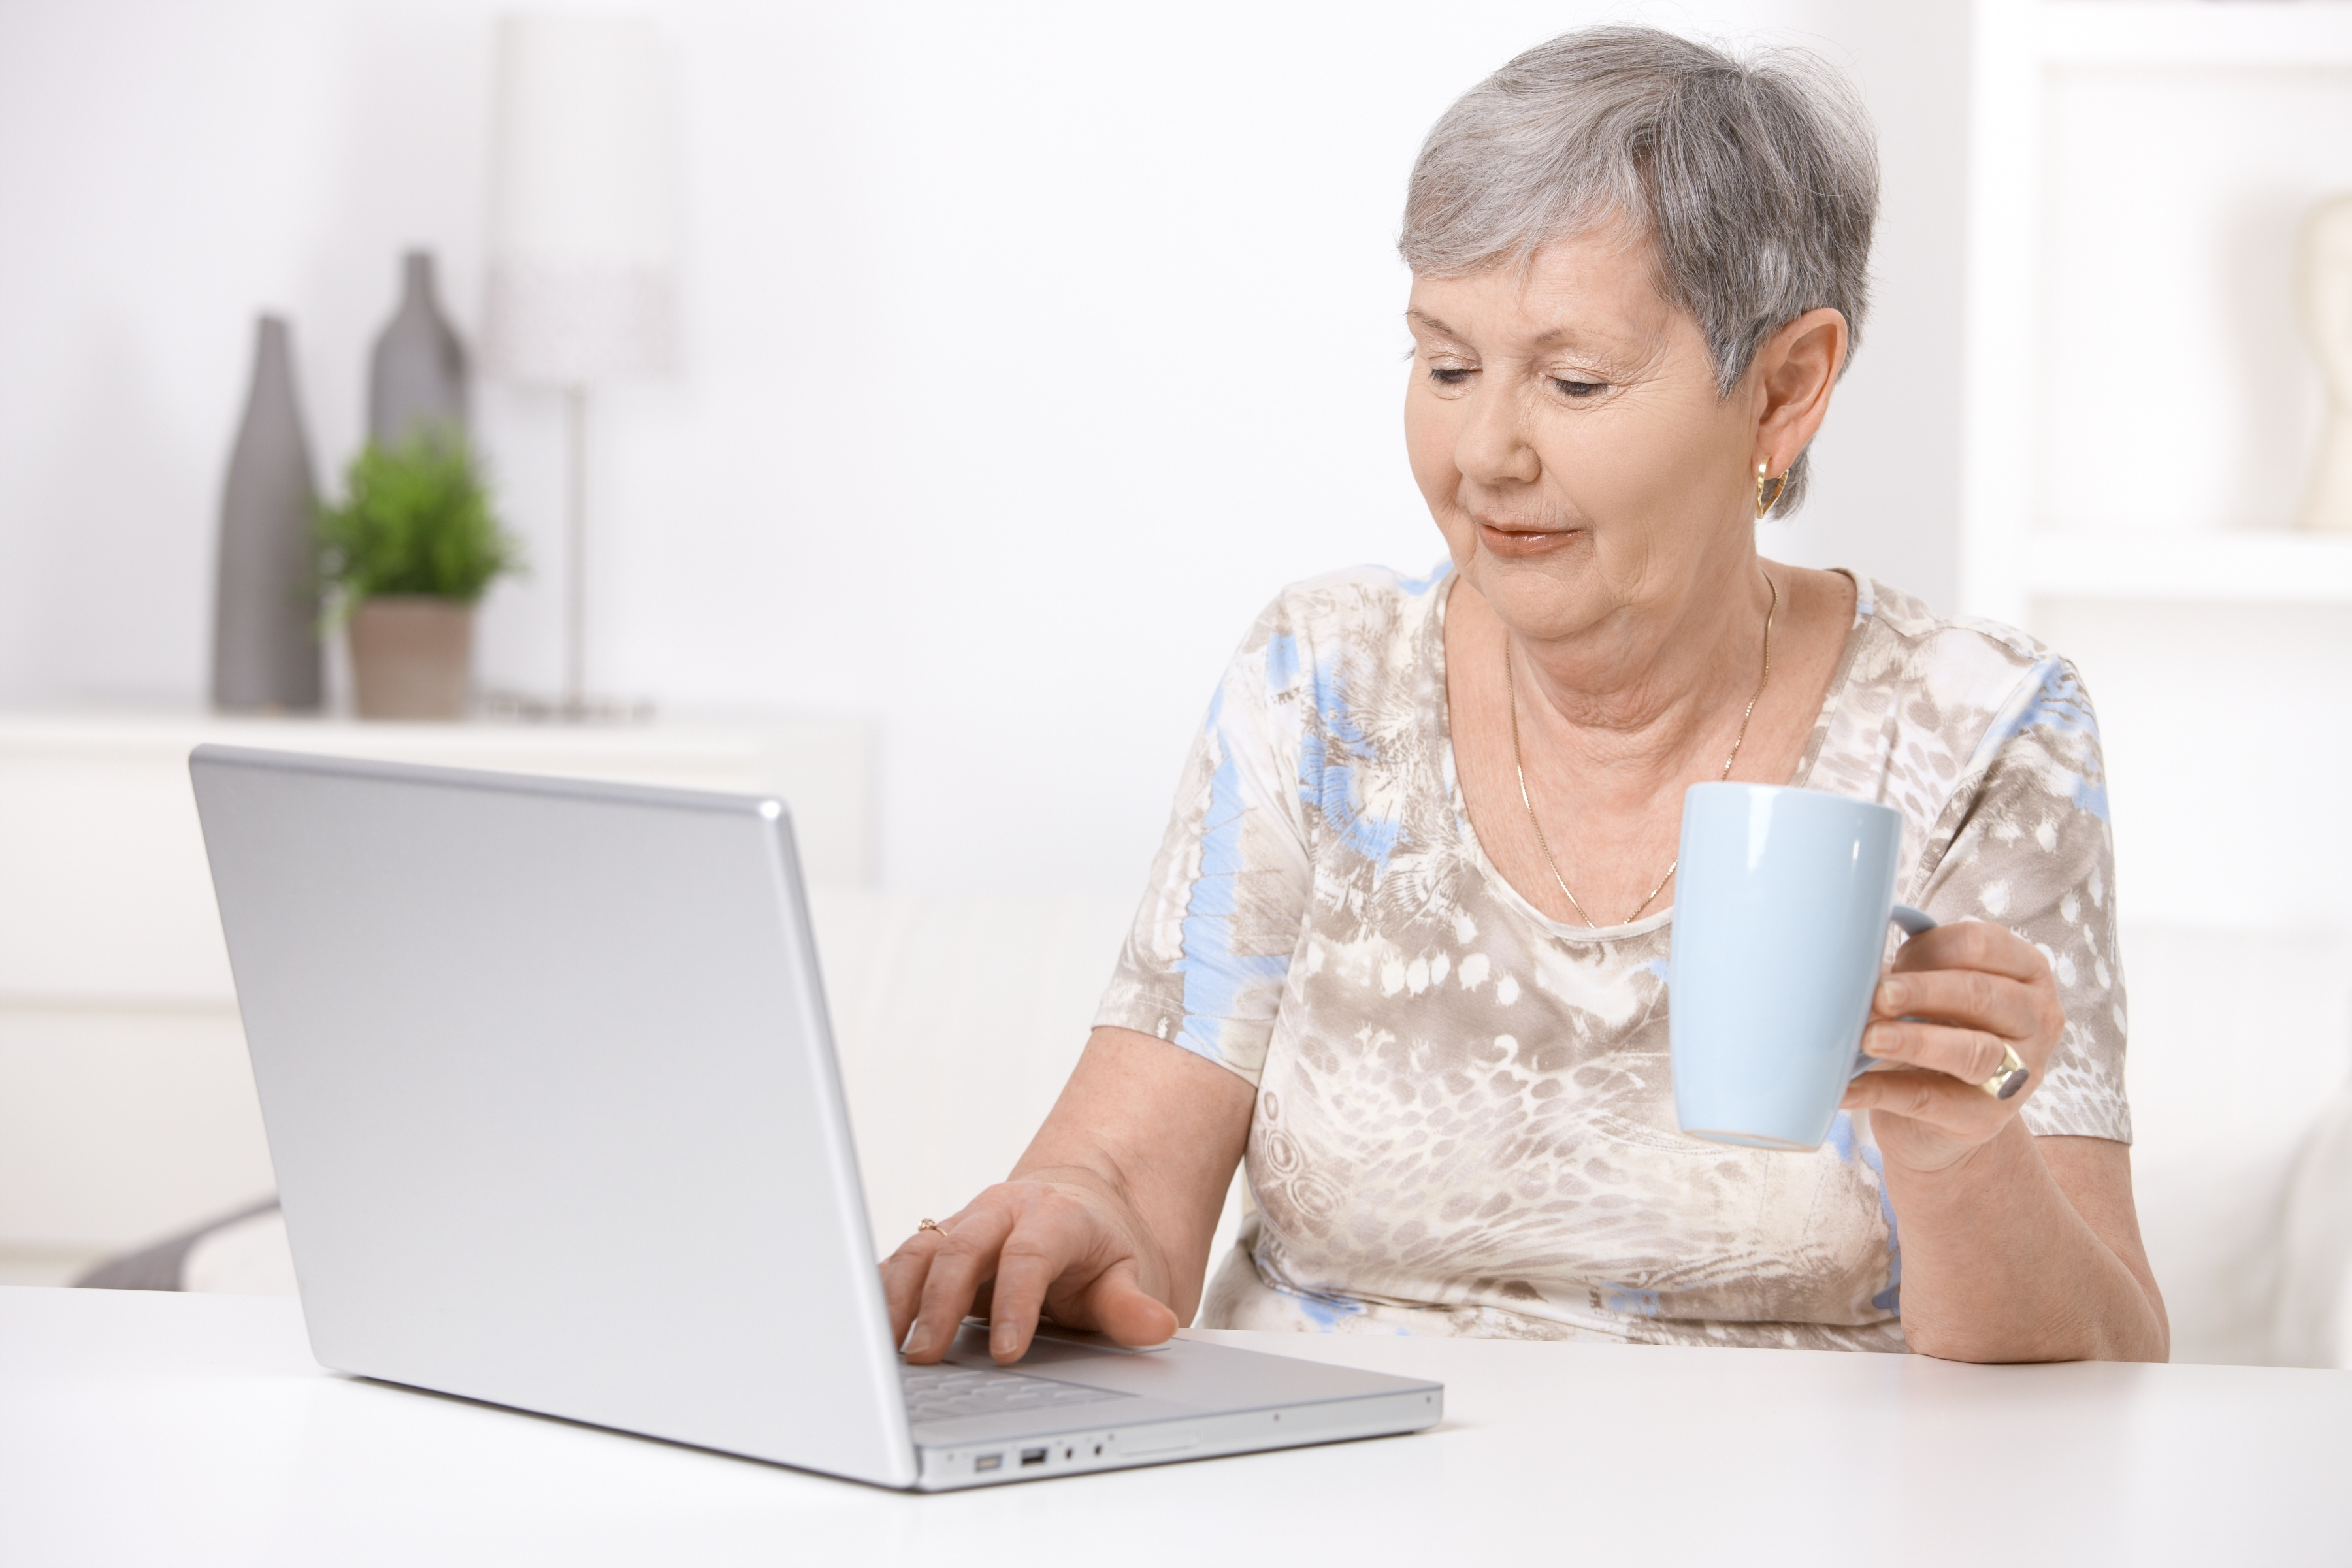 8_Crowdfunding_Sites_You_Can_Use_to_Help_Pay_for_Senior_Living.jpg